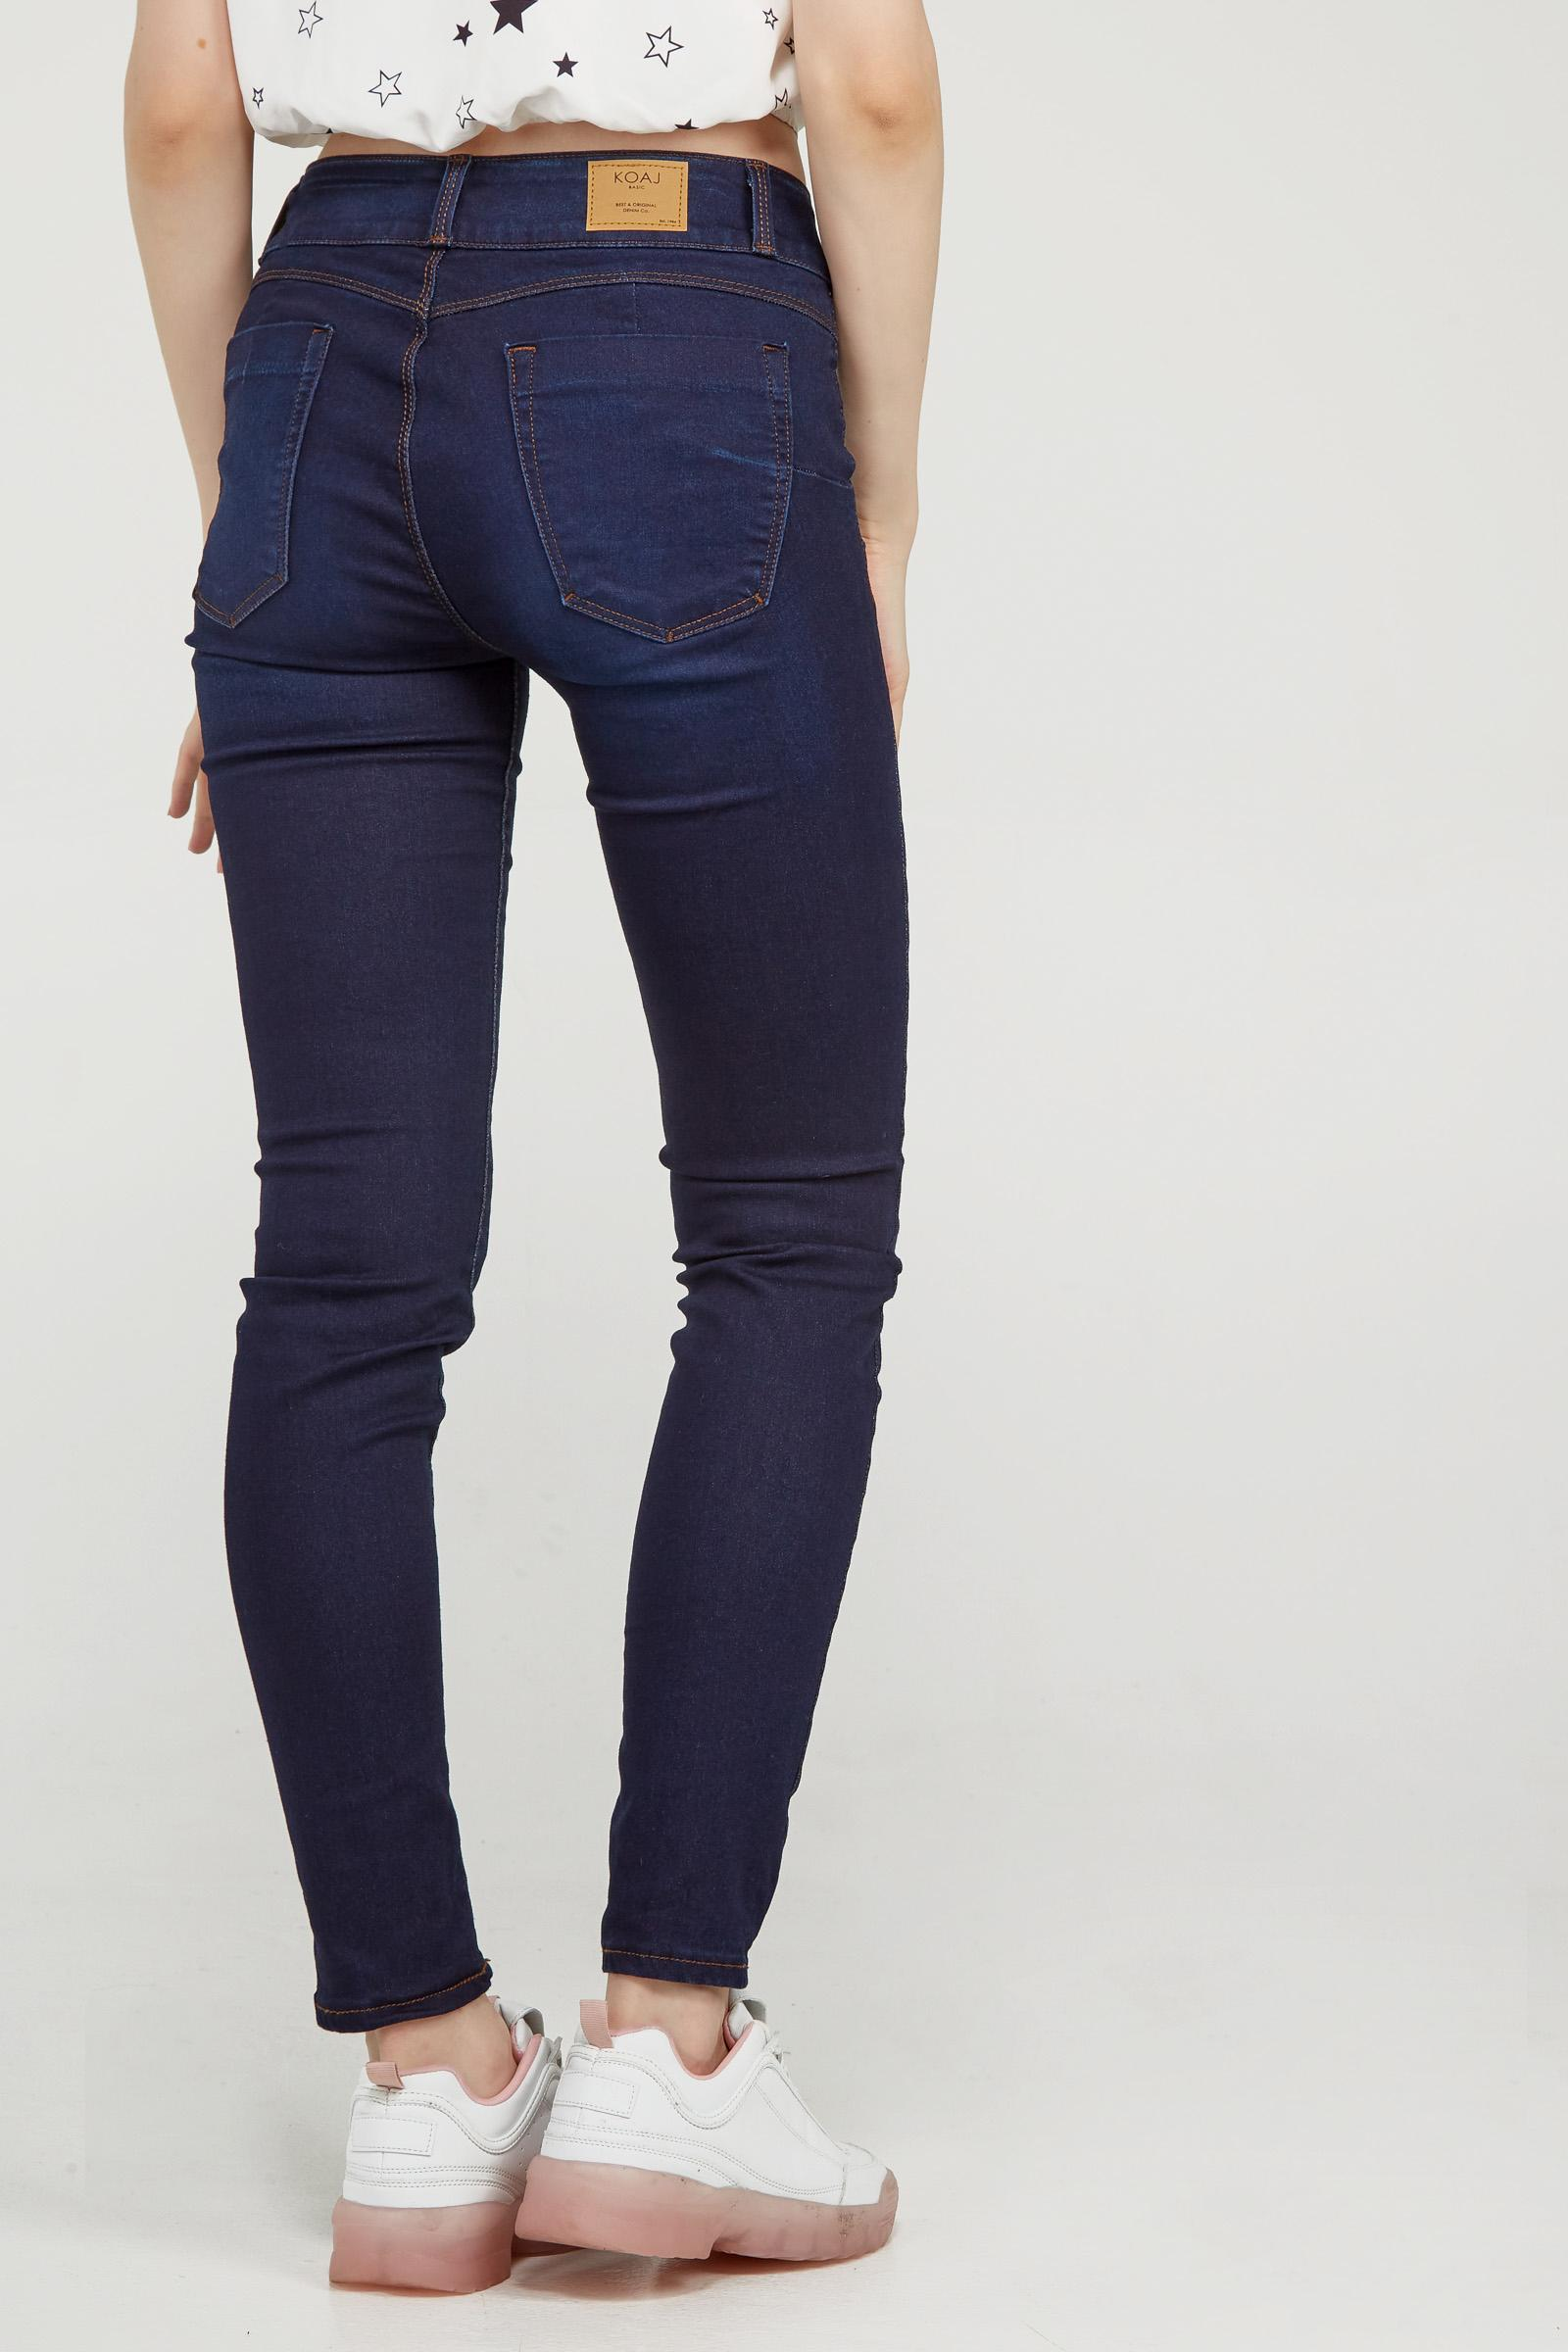 KOAJ-PANTALON KOAJ JEAN PUSH UP 14 1/20